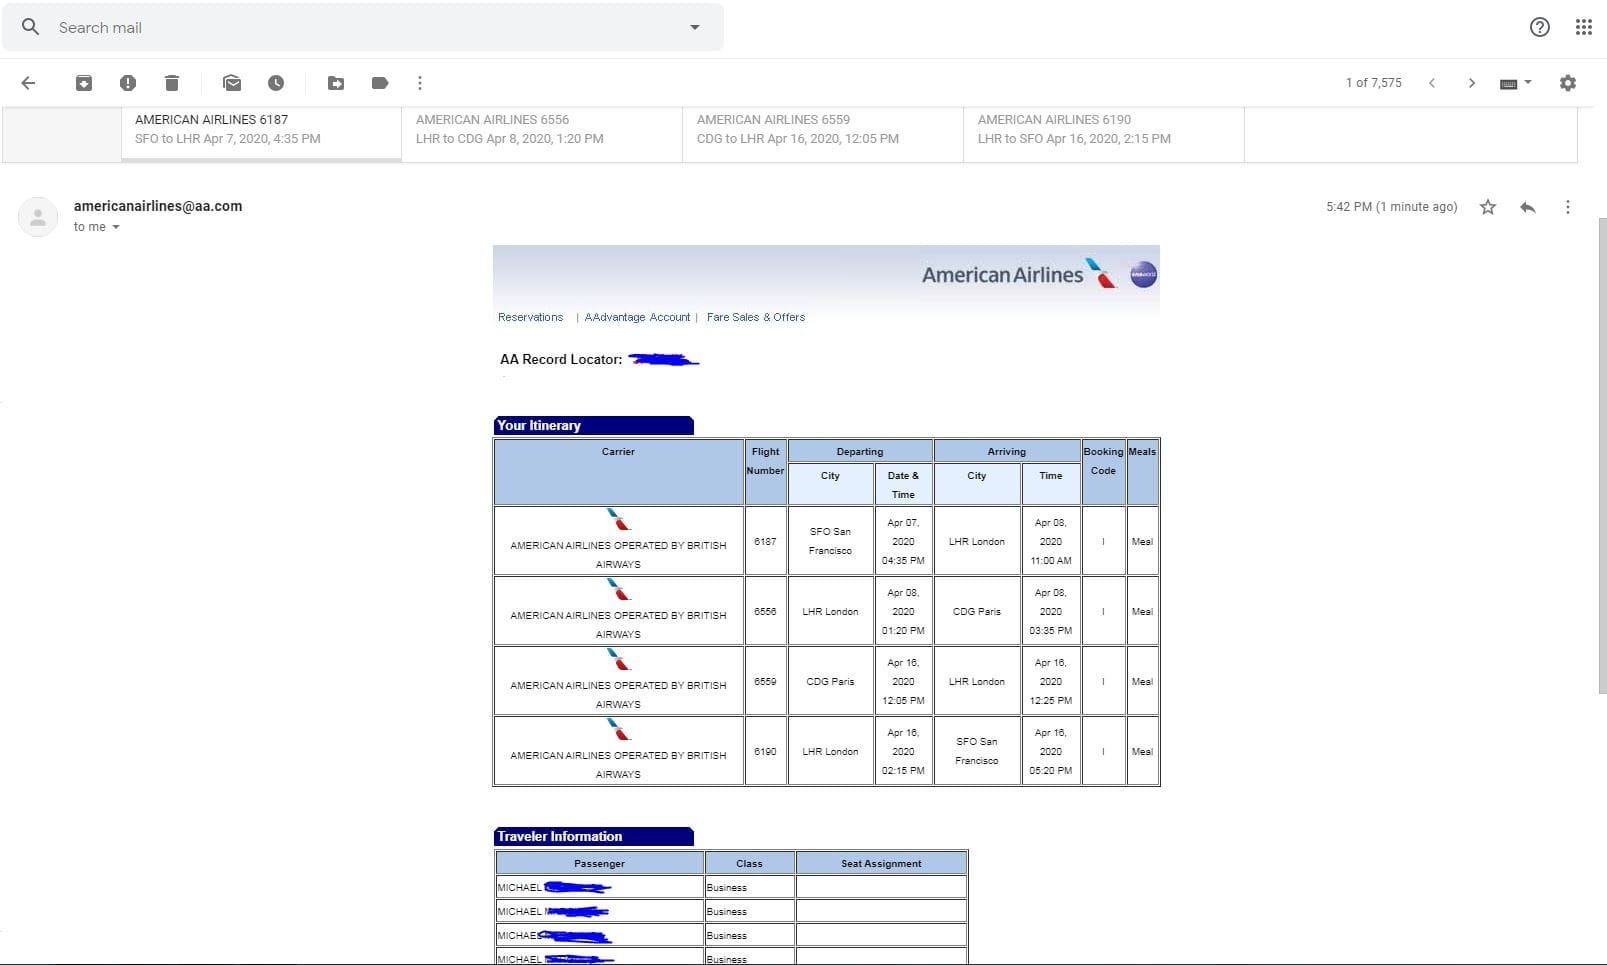 American Airlines and British Airways BUSINESS CLASS to Paris and London $1500